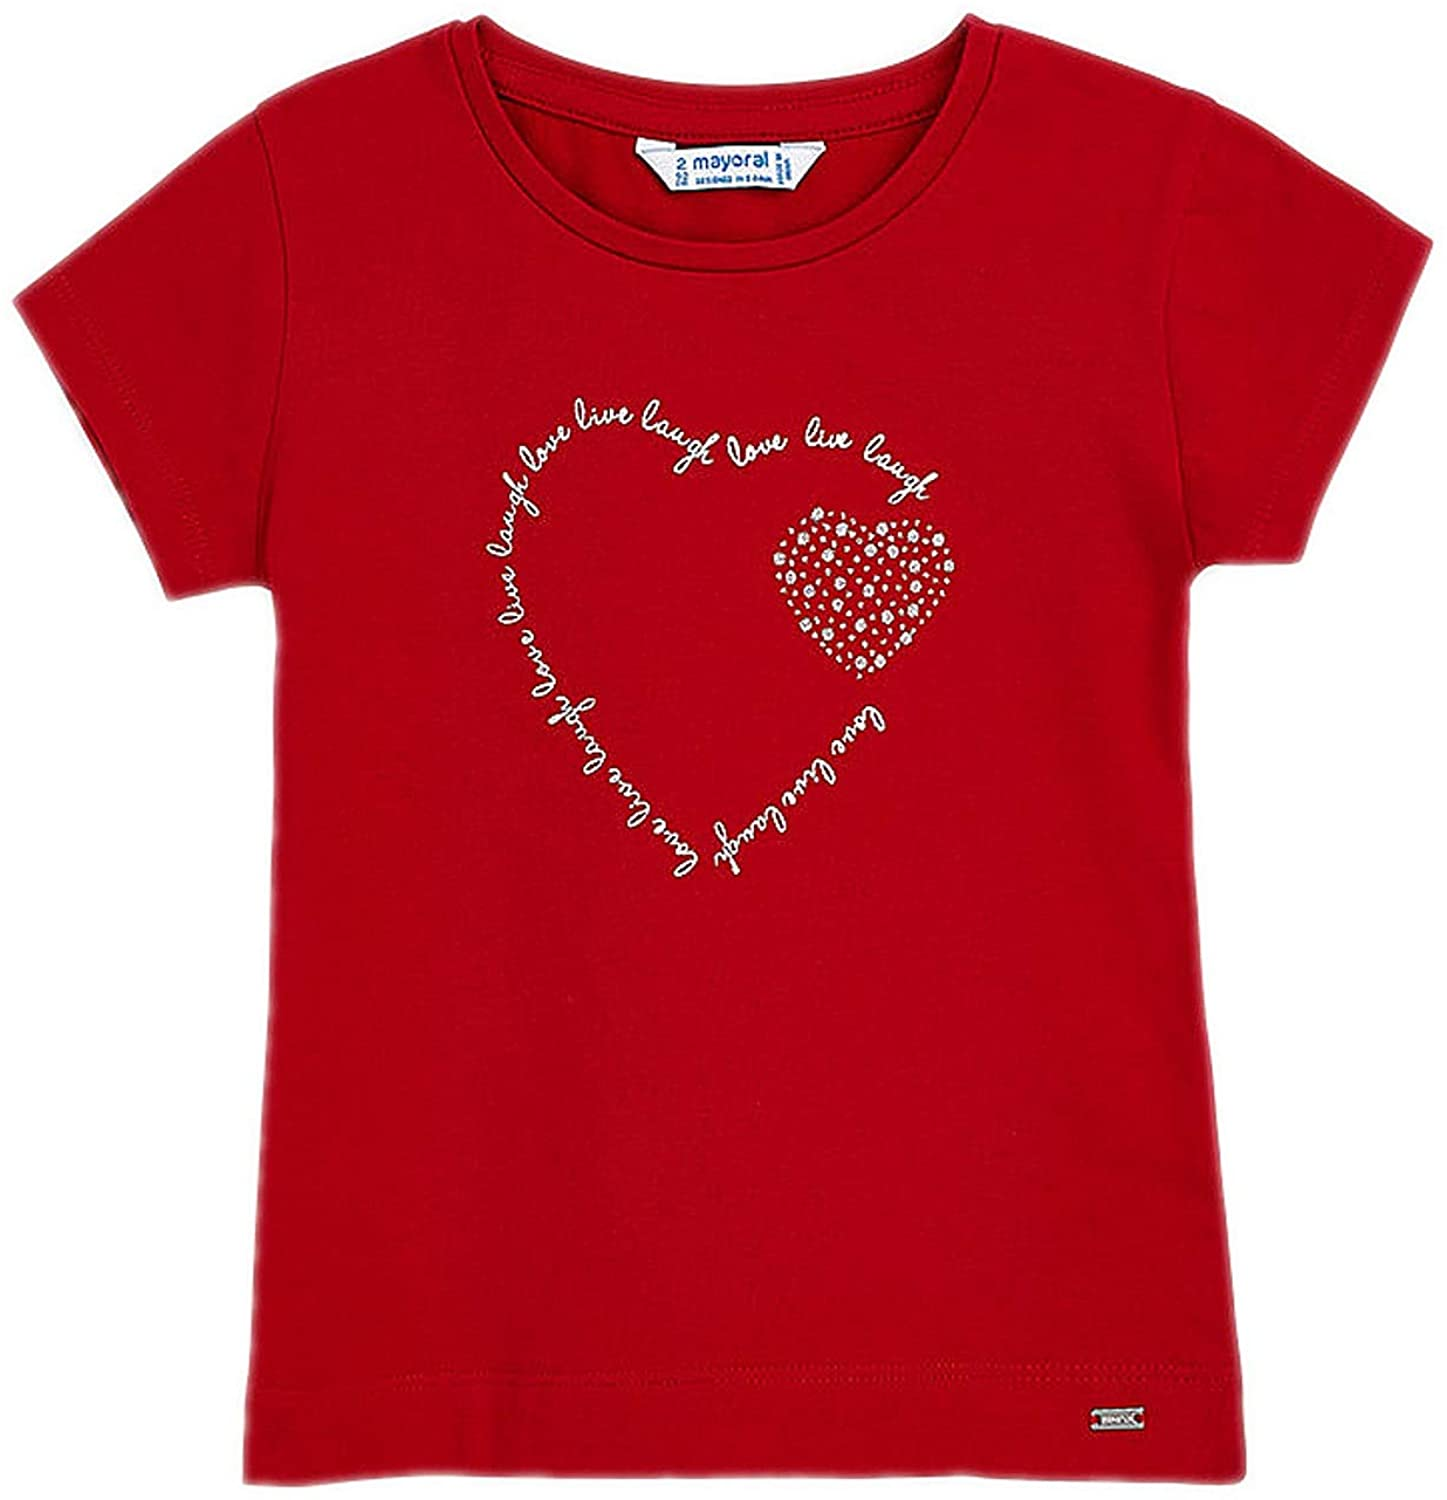 Mayoral - Basic s/s t-Shirt for Girls - 0174, Red